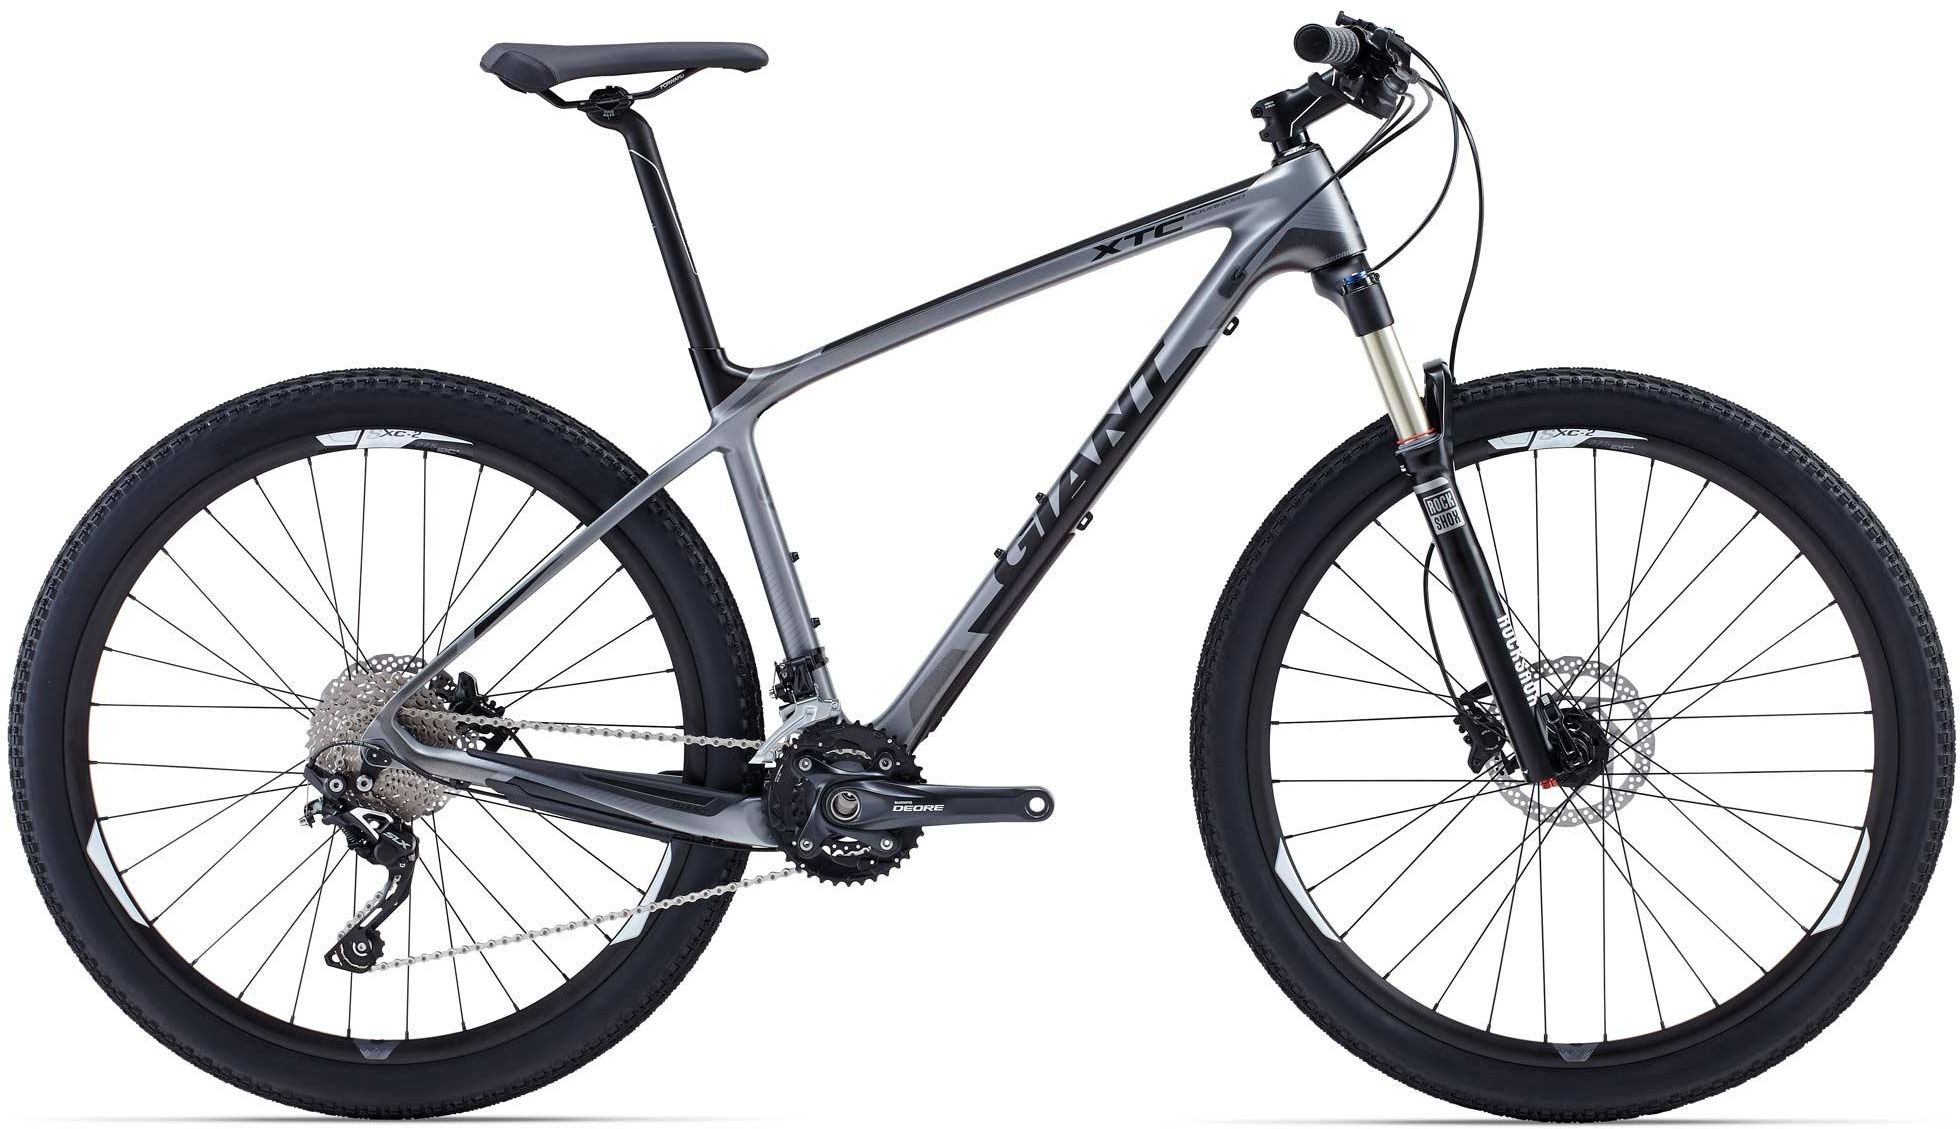 Giant Xtc Advanced 275 3 2015 Review The Bike List Frame Slr